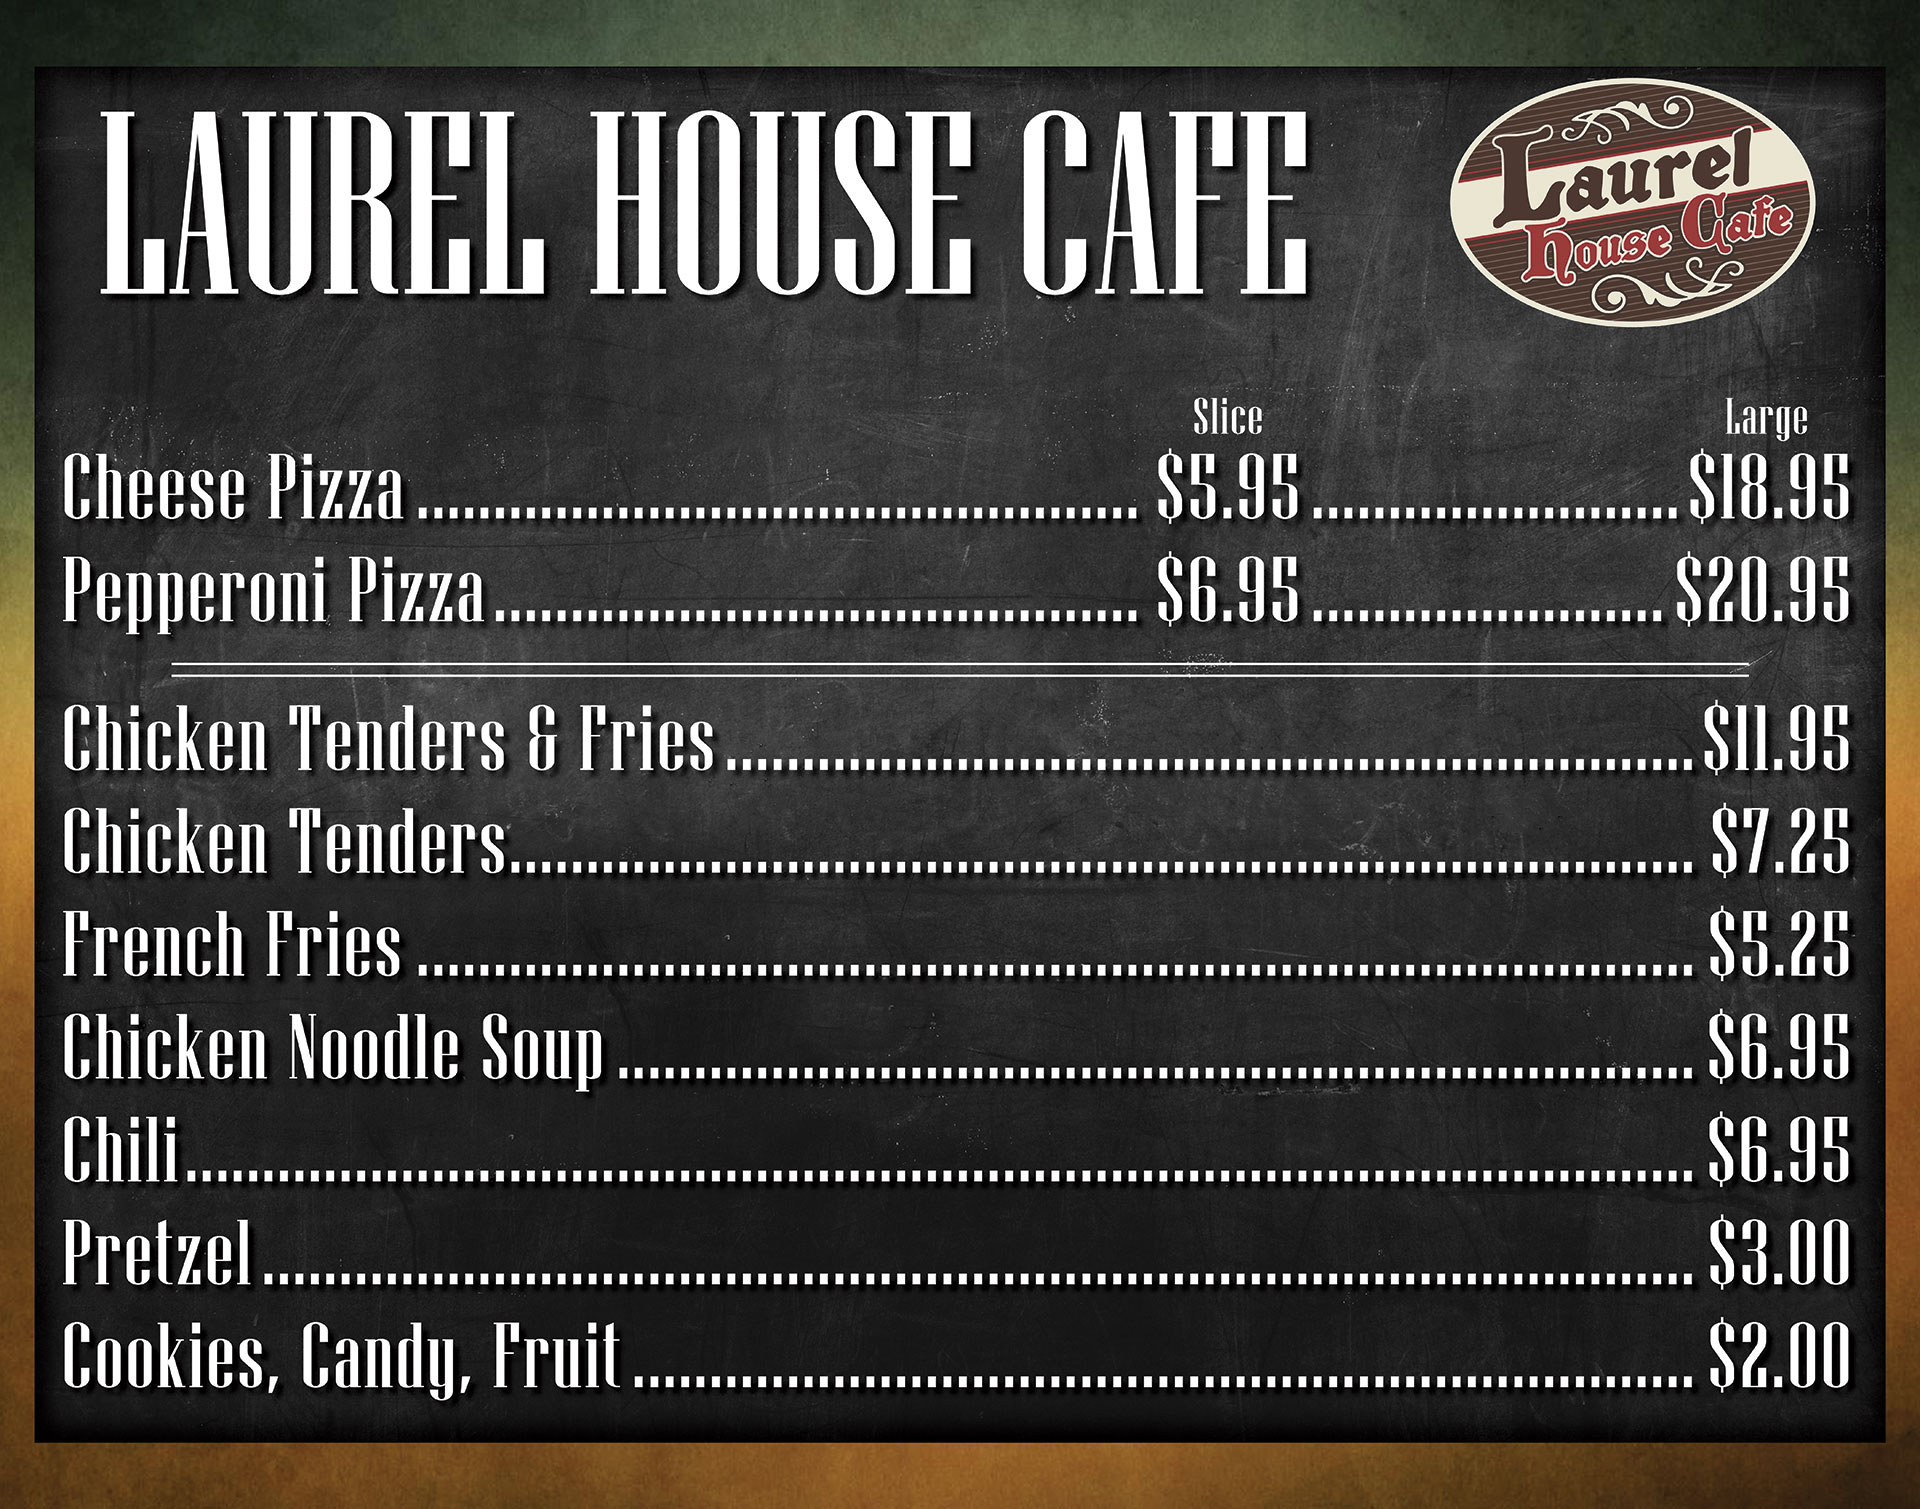 Laurel House Cafe Menu